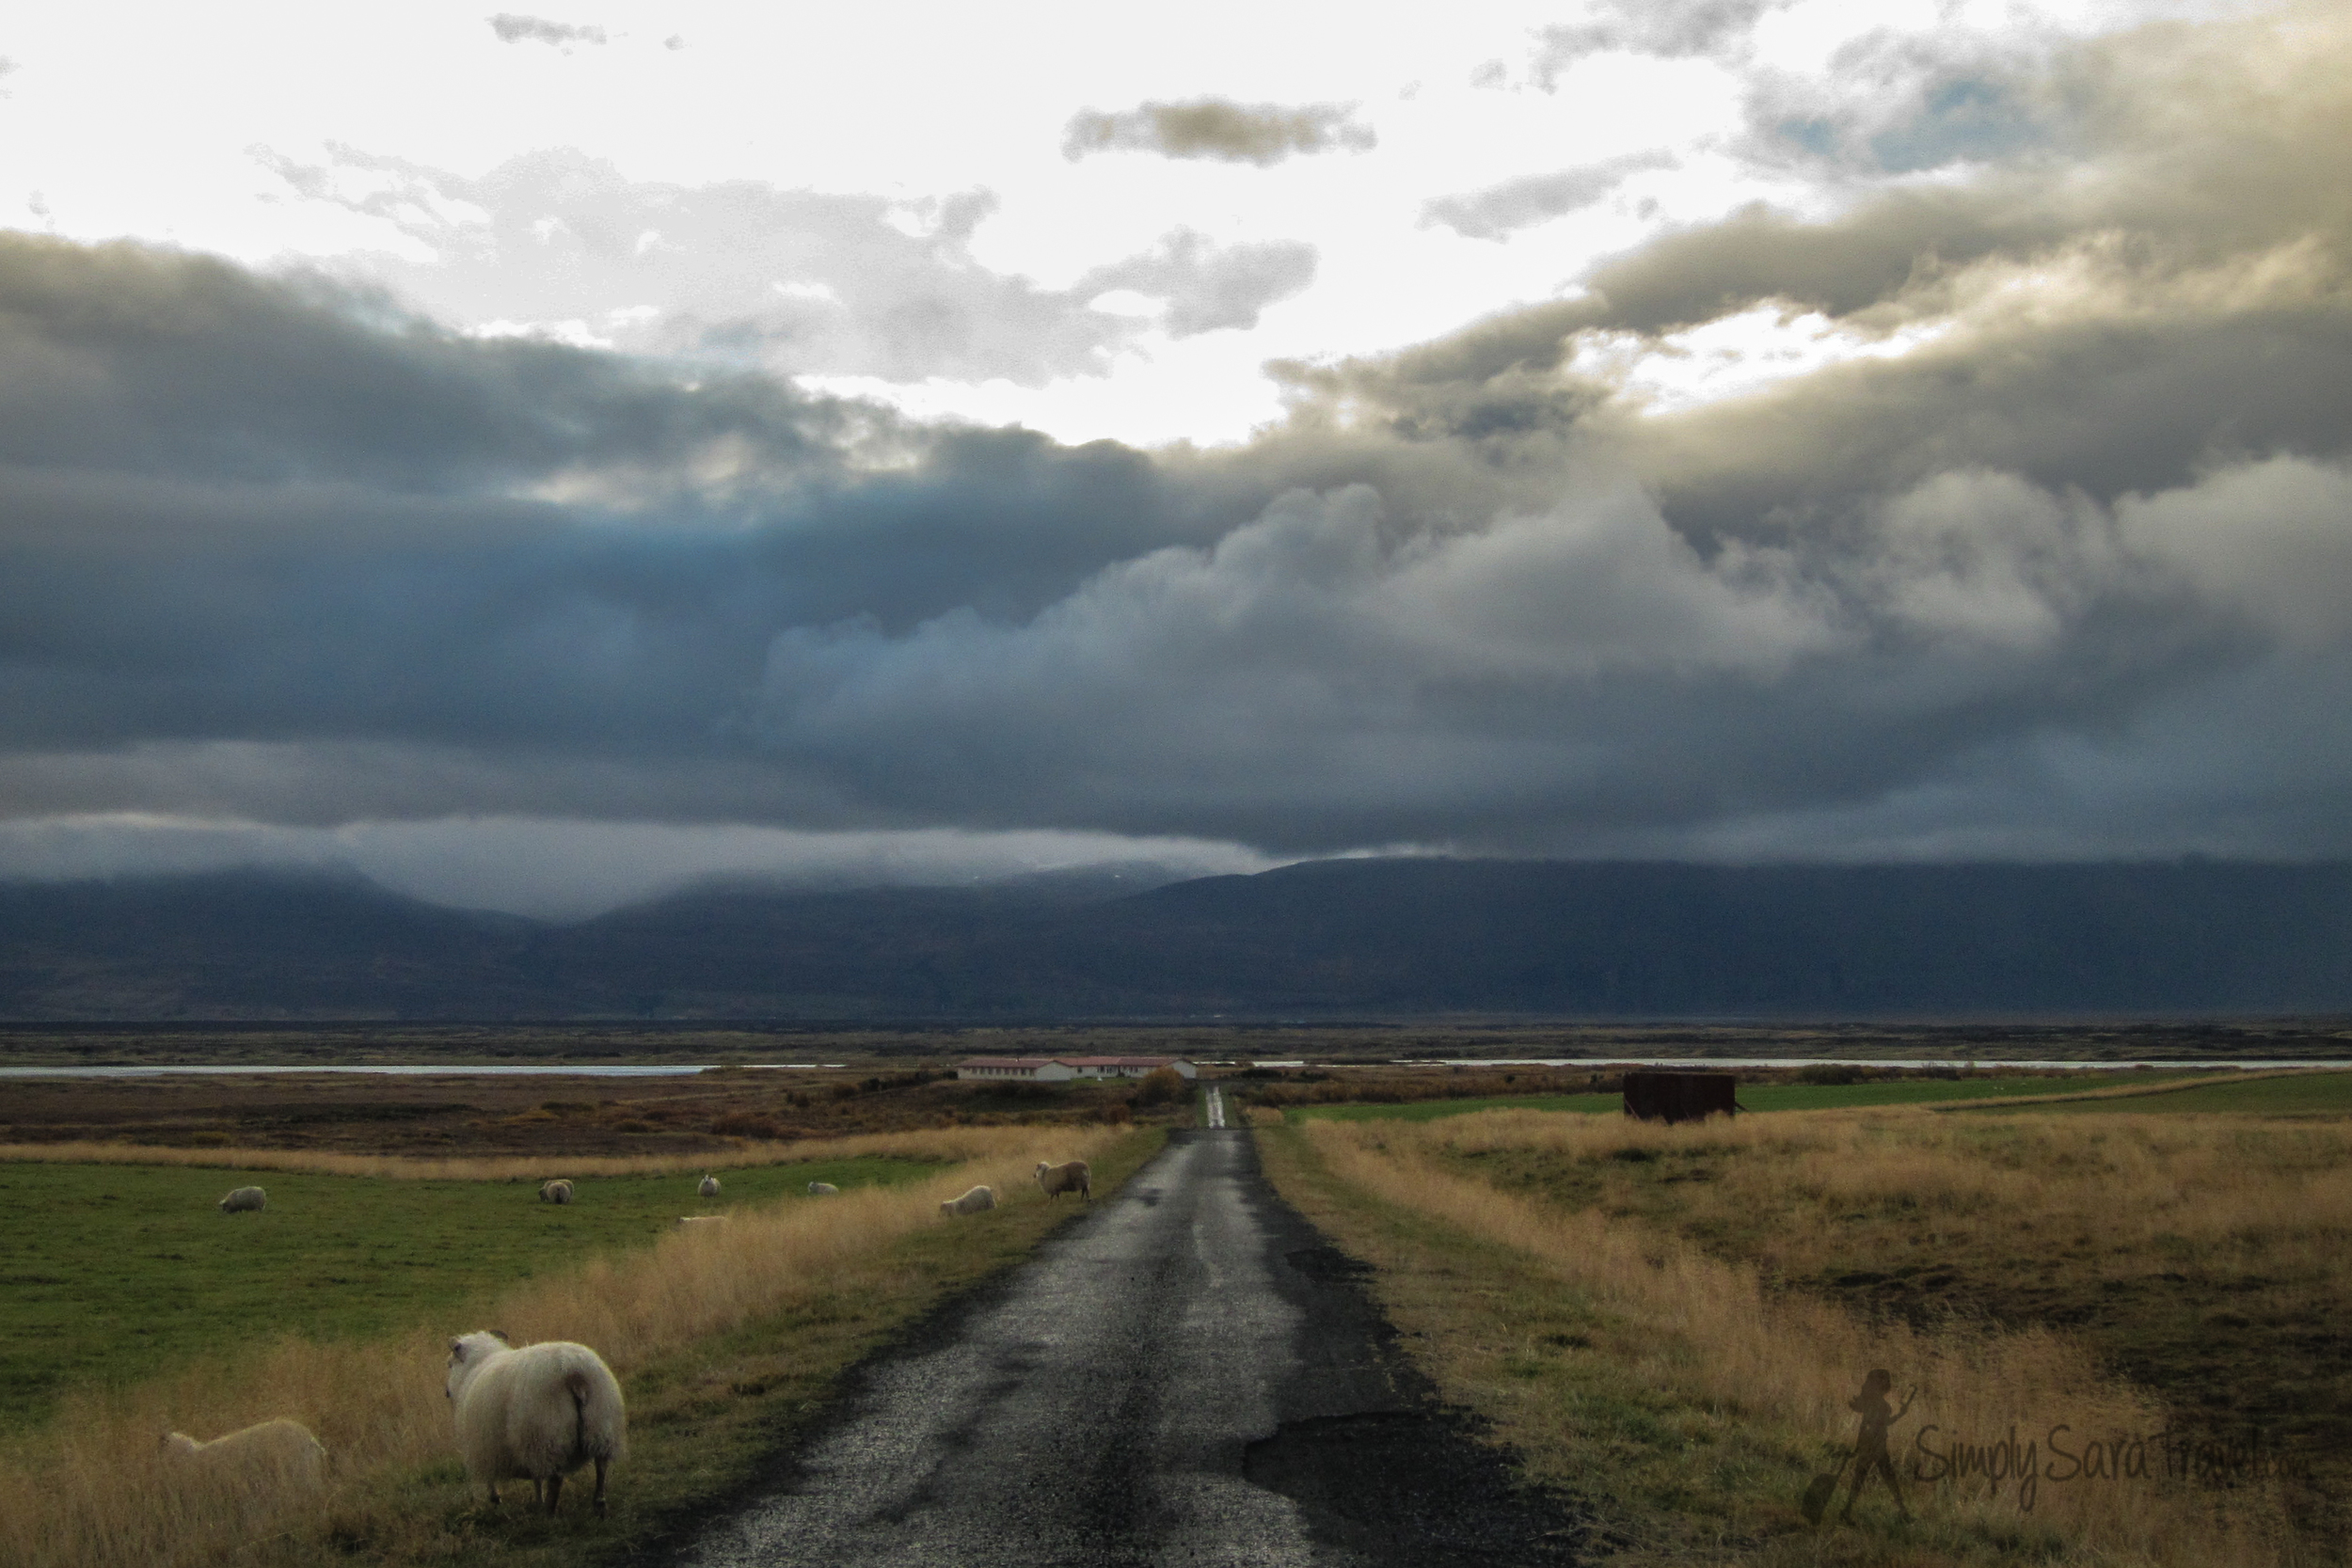 Be careful of spontaneous sheep crossings in Iceland!